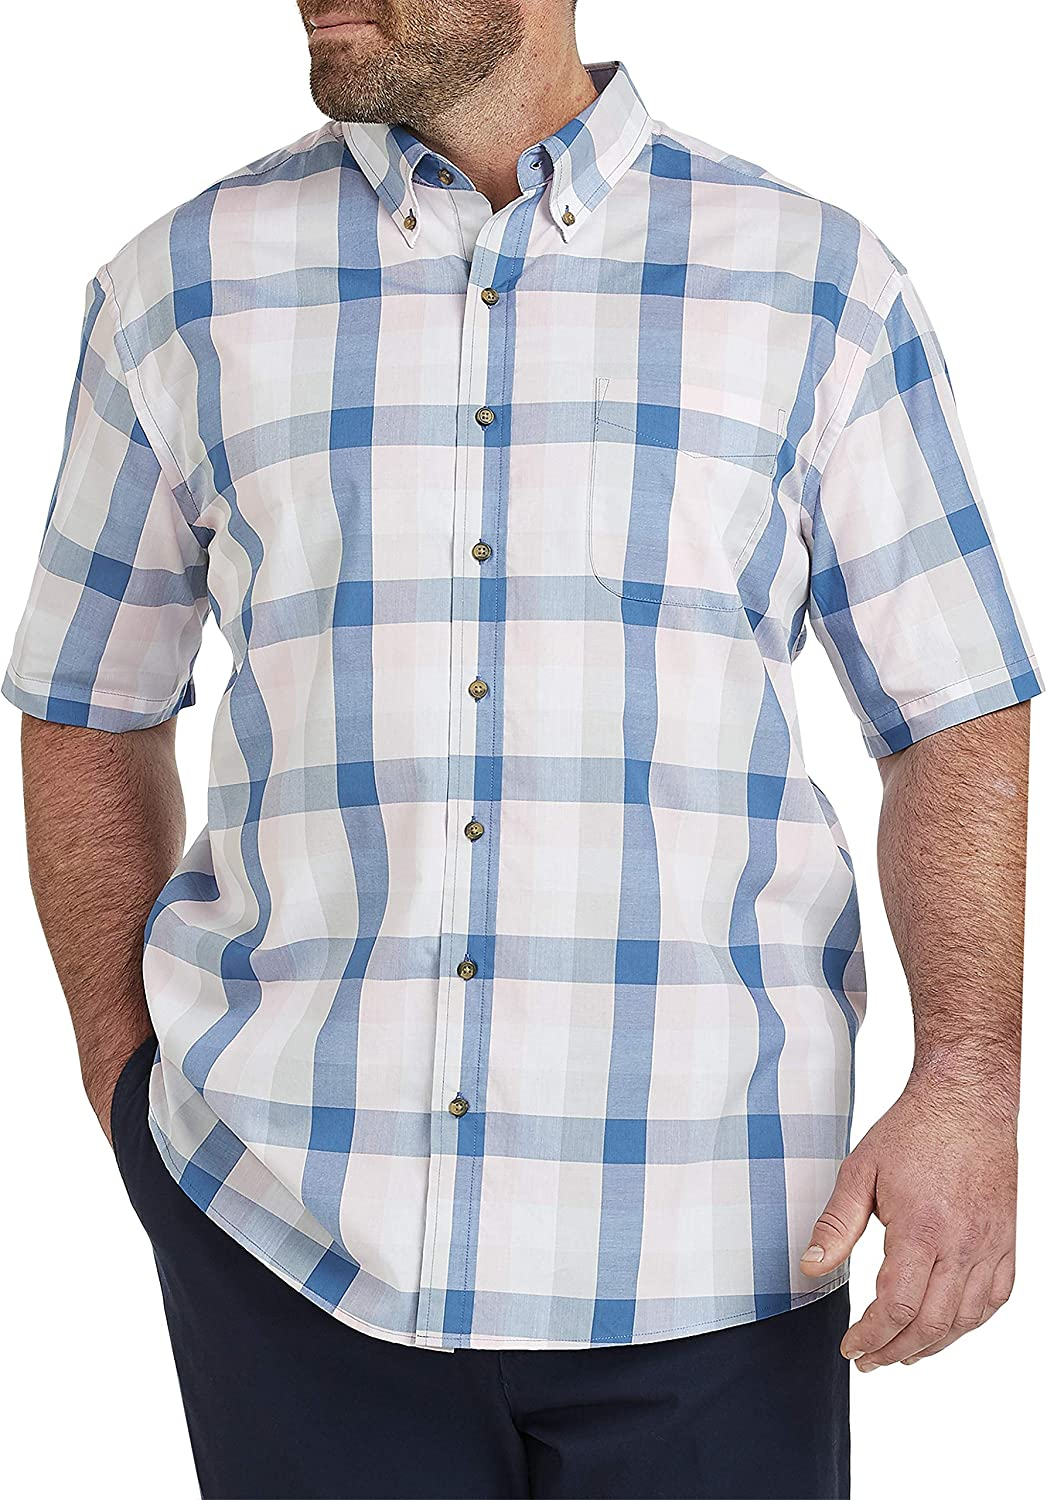 Harbor Bay by DXL Big and Tall Easy-Care Long-Sleeve Plaid Sport Shirt